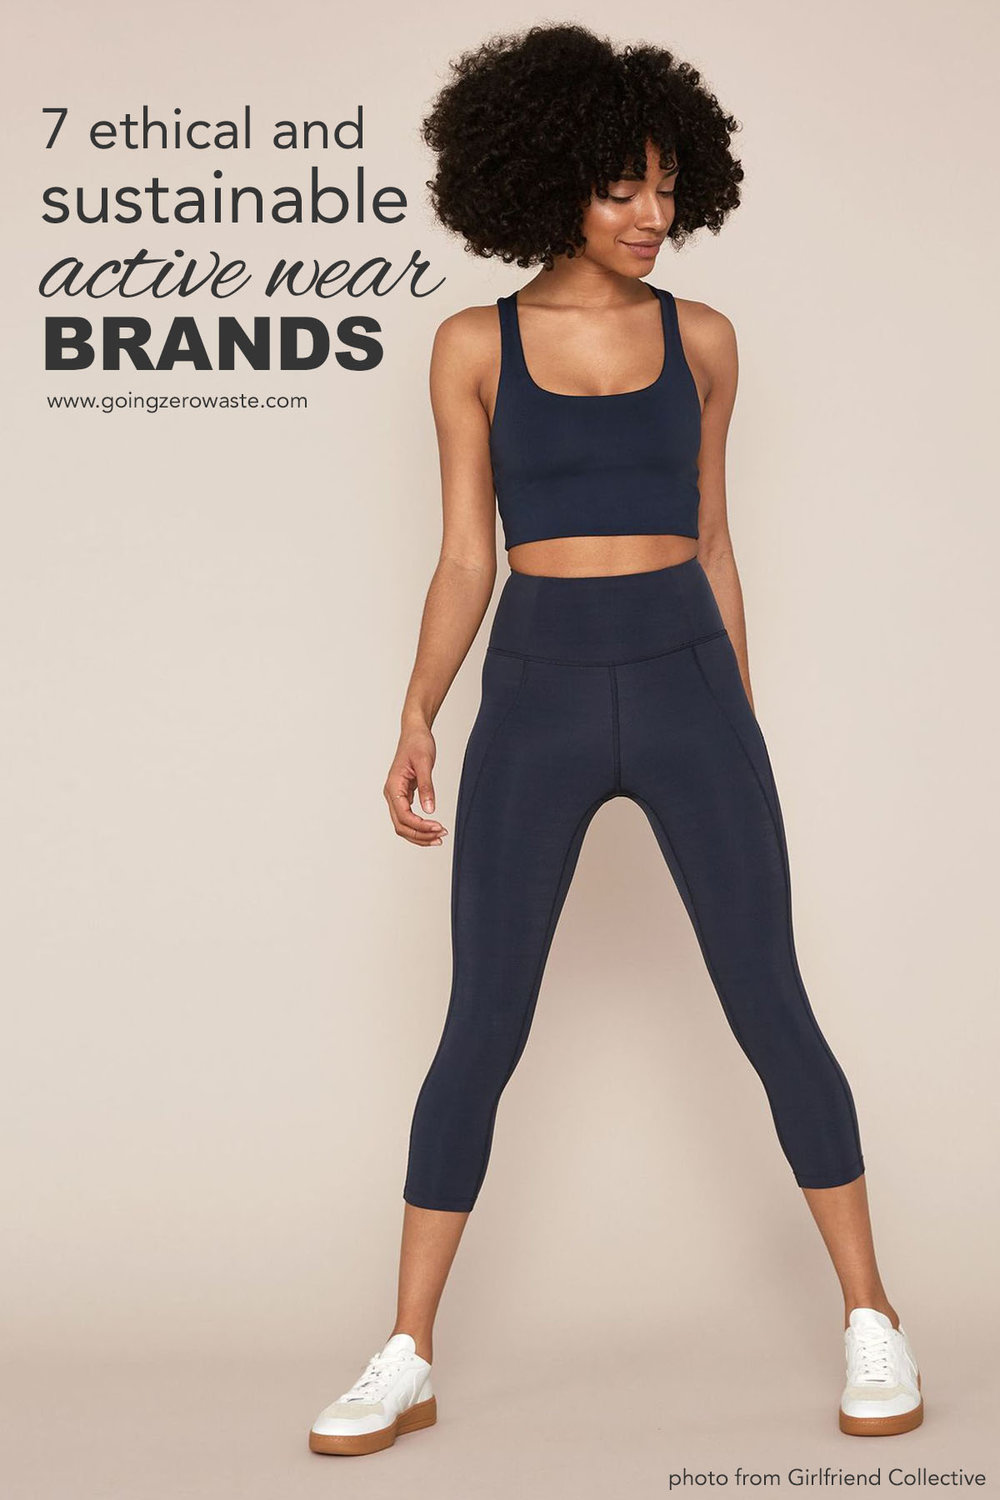 7 ethical and sustainable active wear brands from www.goingzerowaste.com #zerowaste #ethicalfashion #sustainablefashion #athleticwear